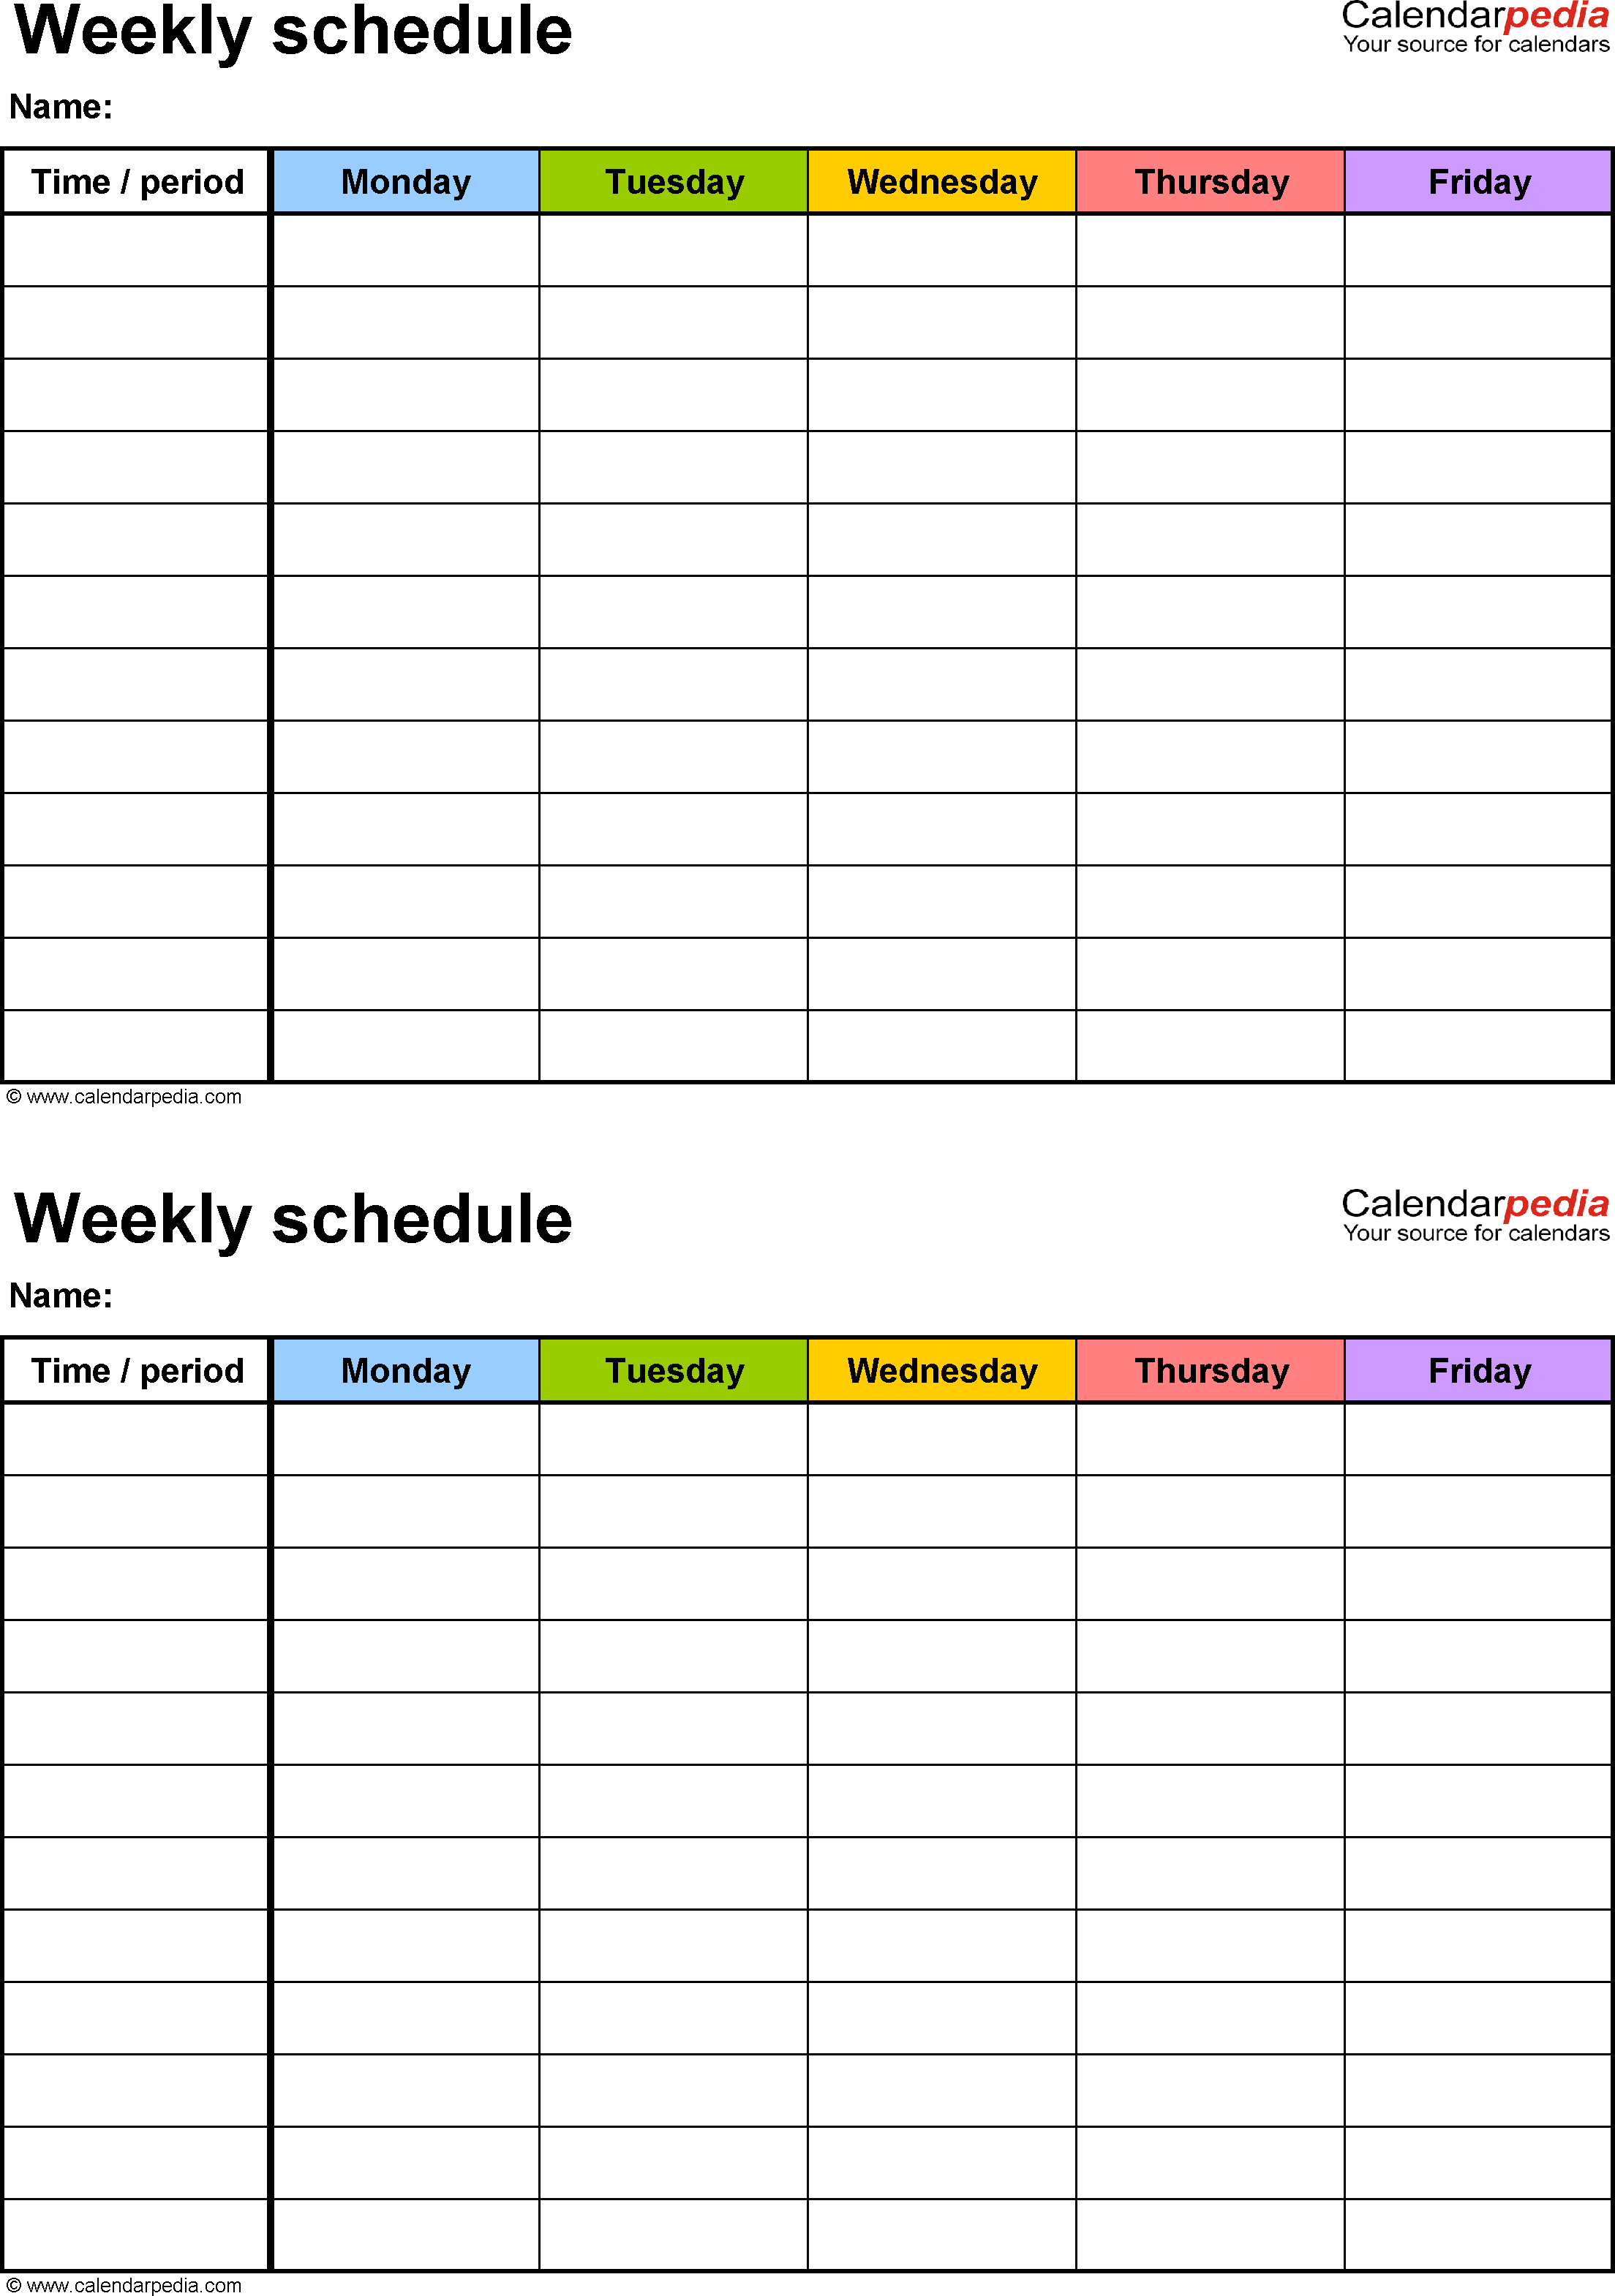 Weekly Schedule Template For Pdf Version   Schedules On One